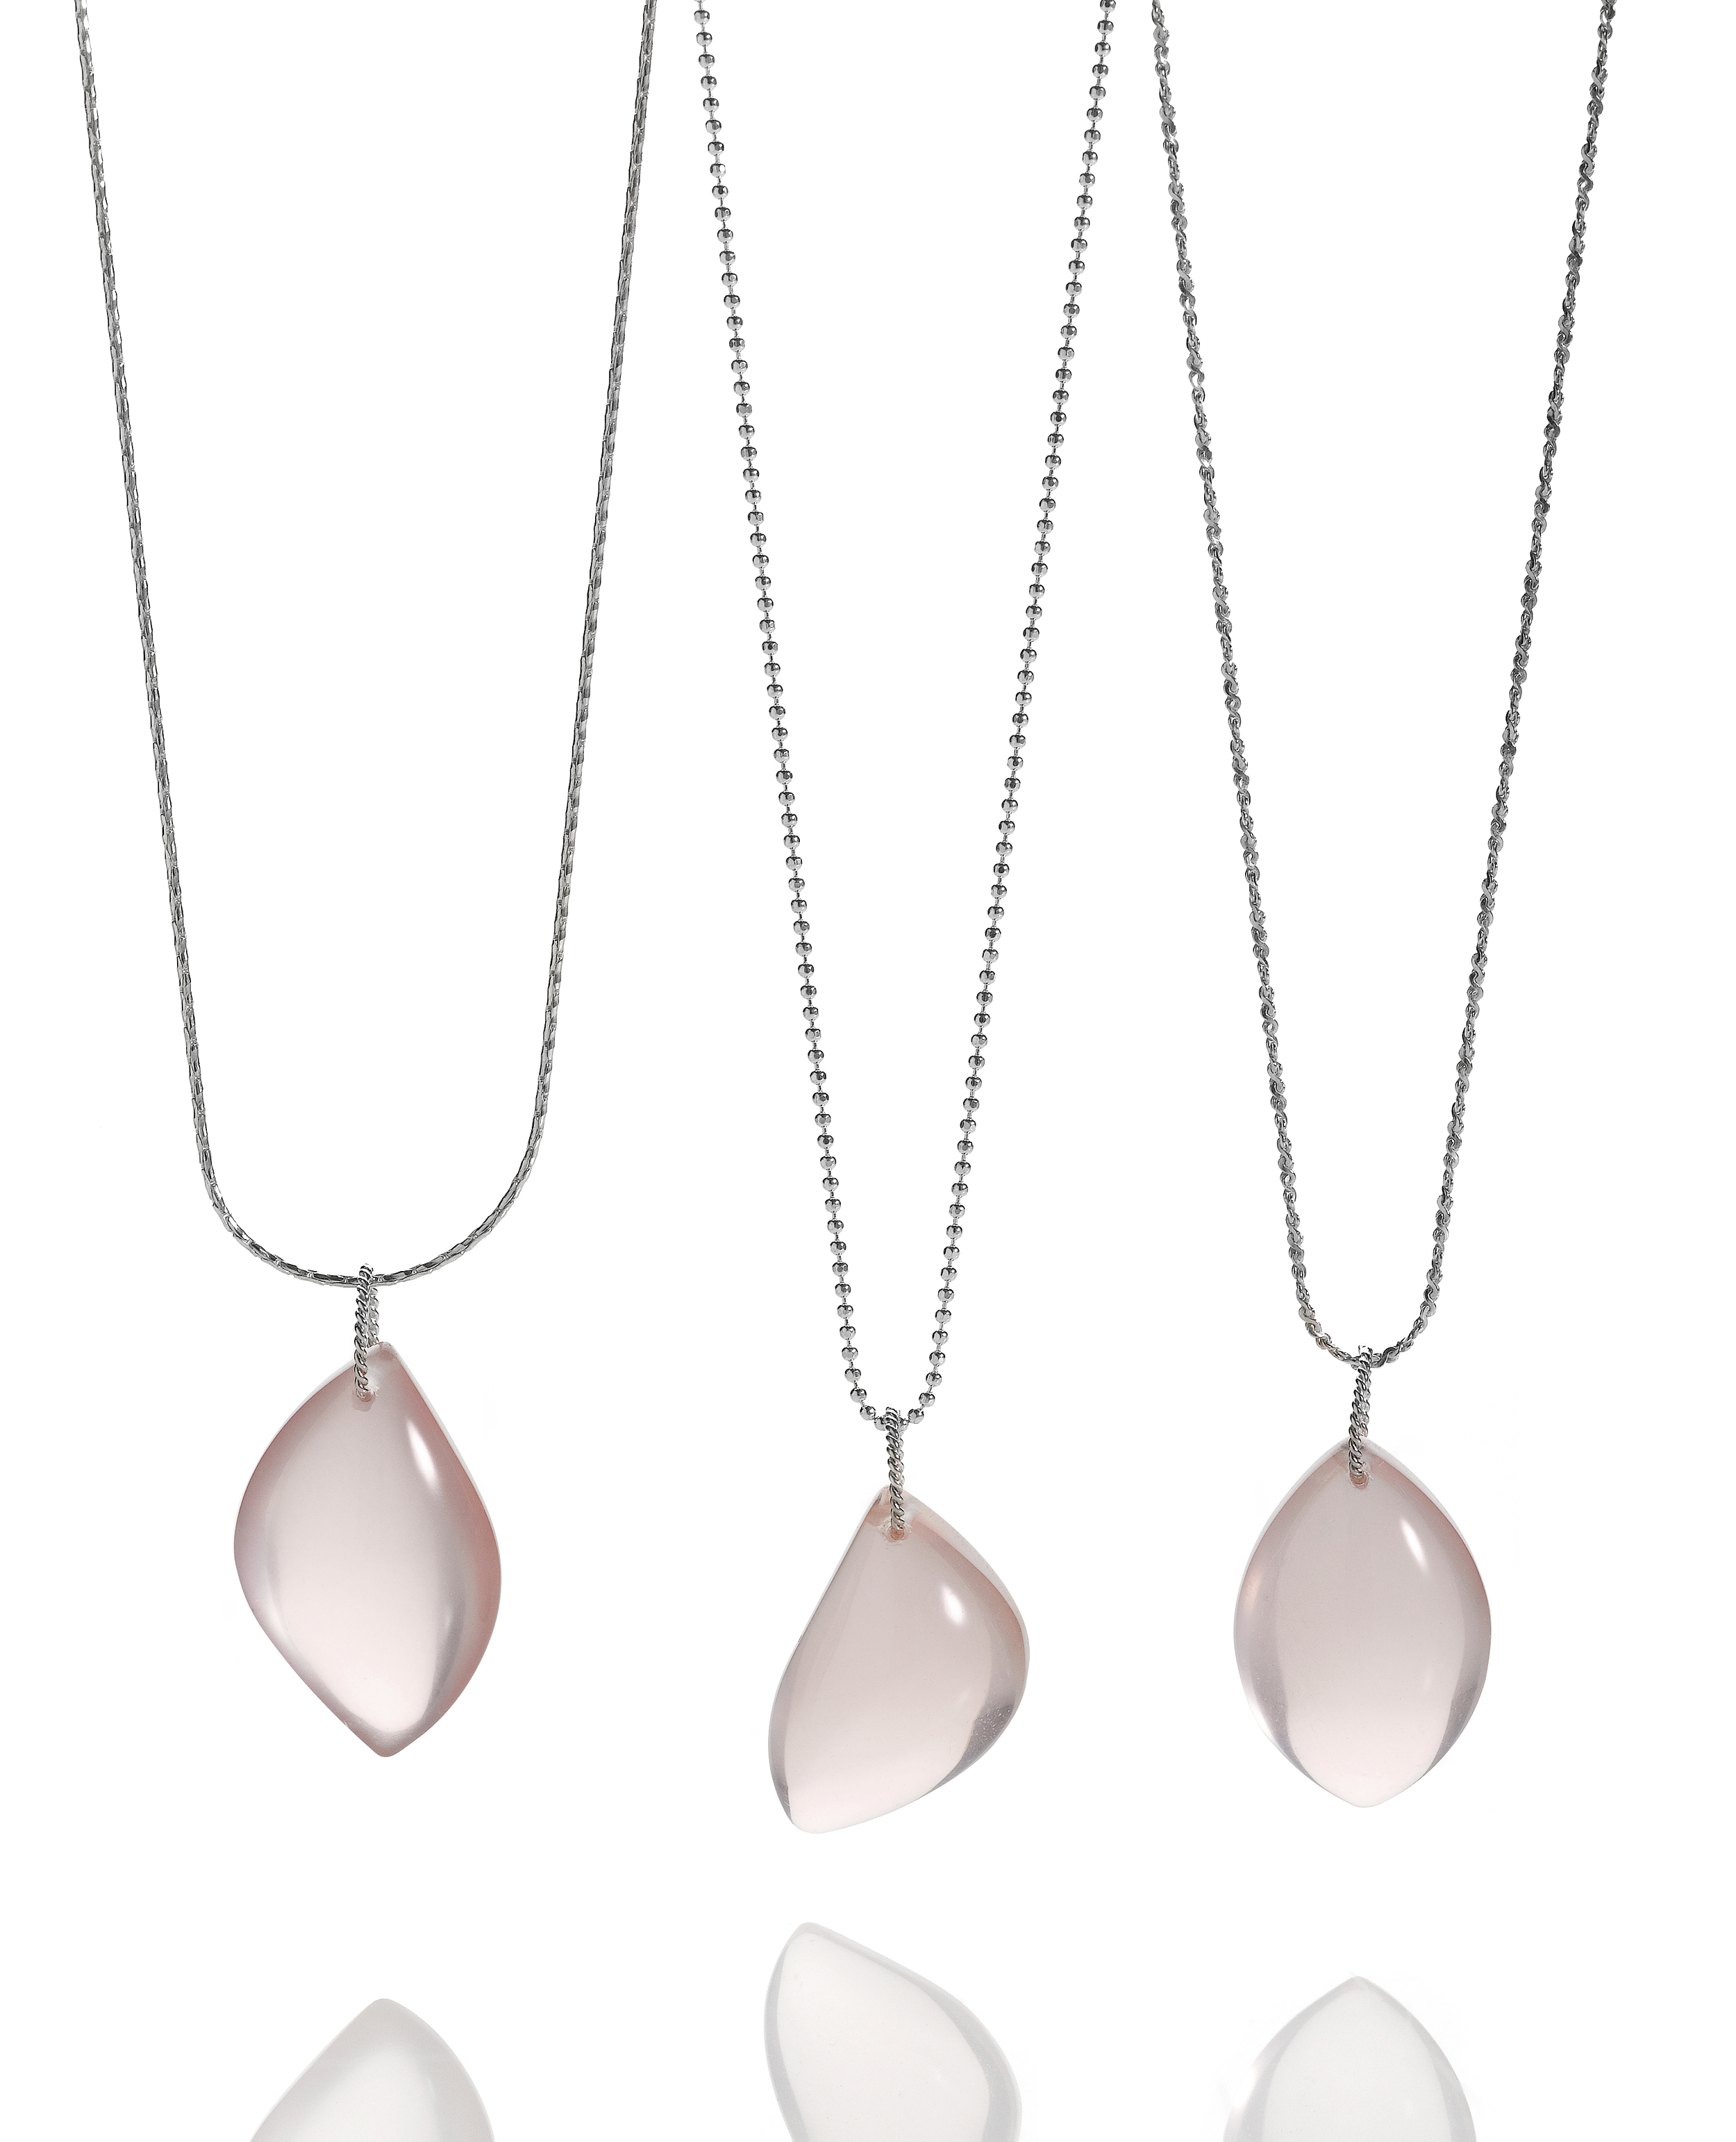 Rose Quartz Necklaces, one of a kind Shamila Fine Jewelry, Seattle